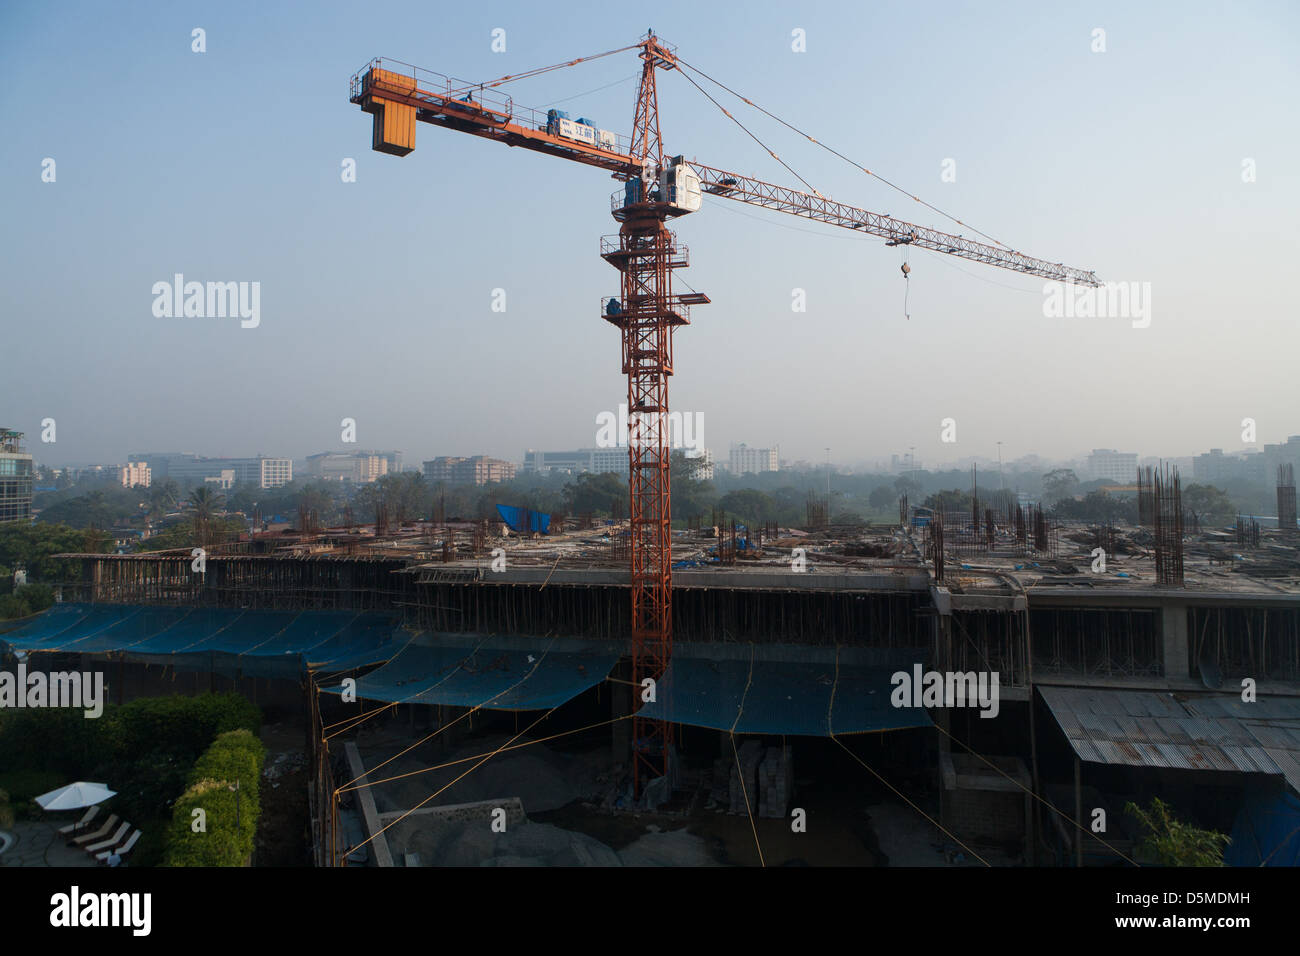 More construction in the fast paced economy of Mumbai, India - Stock Image